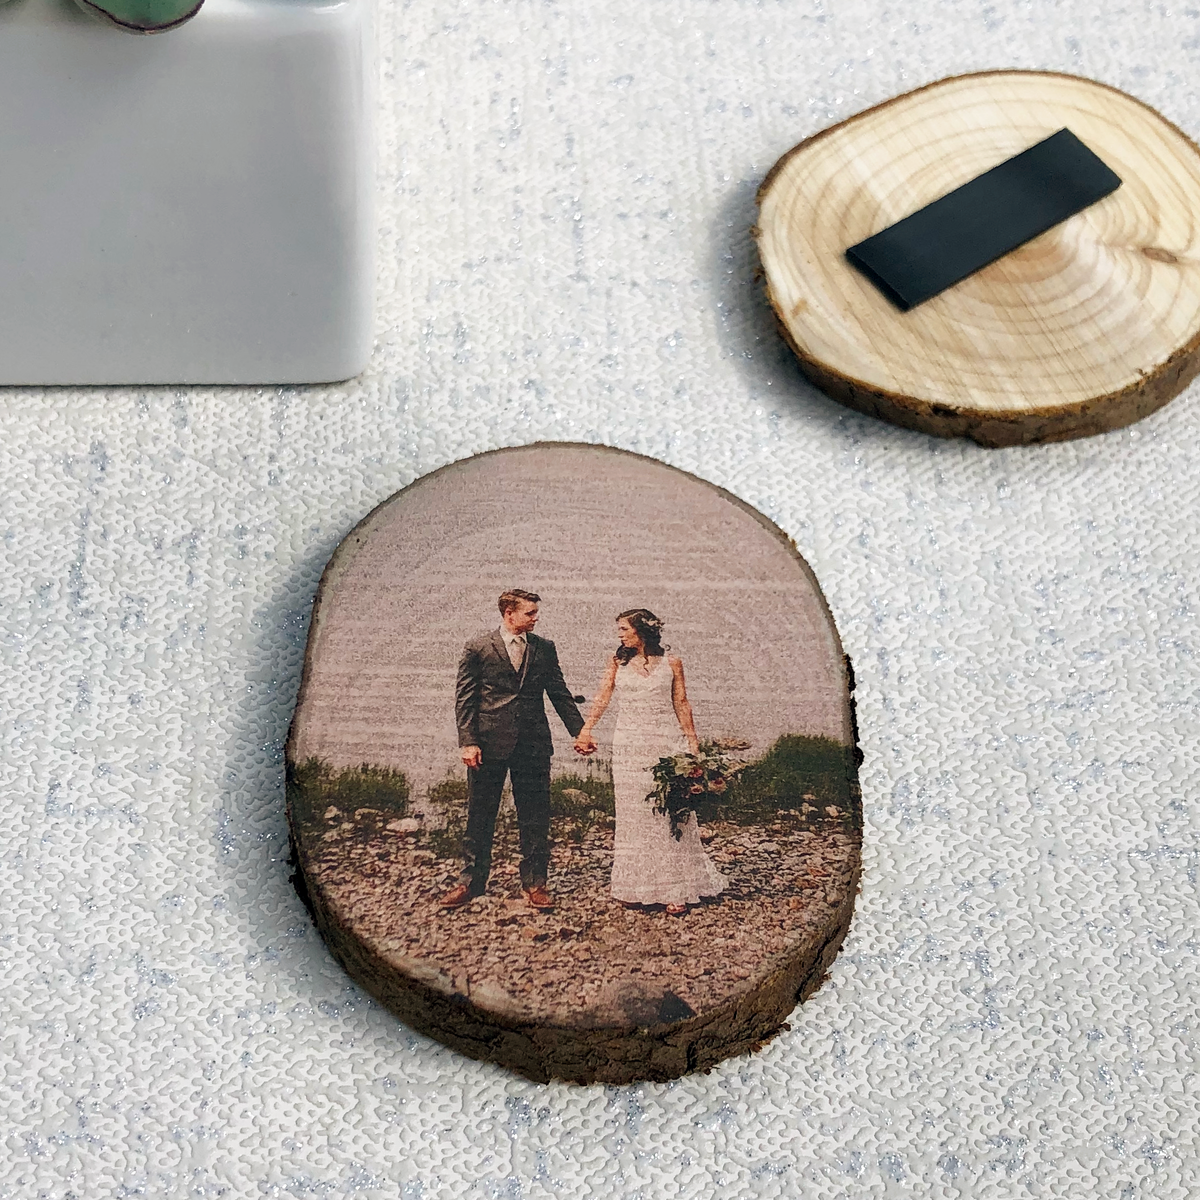 A wood slice fridge magnet showing a bride and groom on their wedding day.